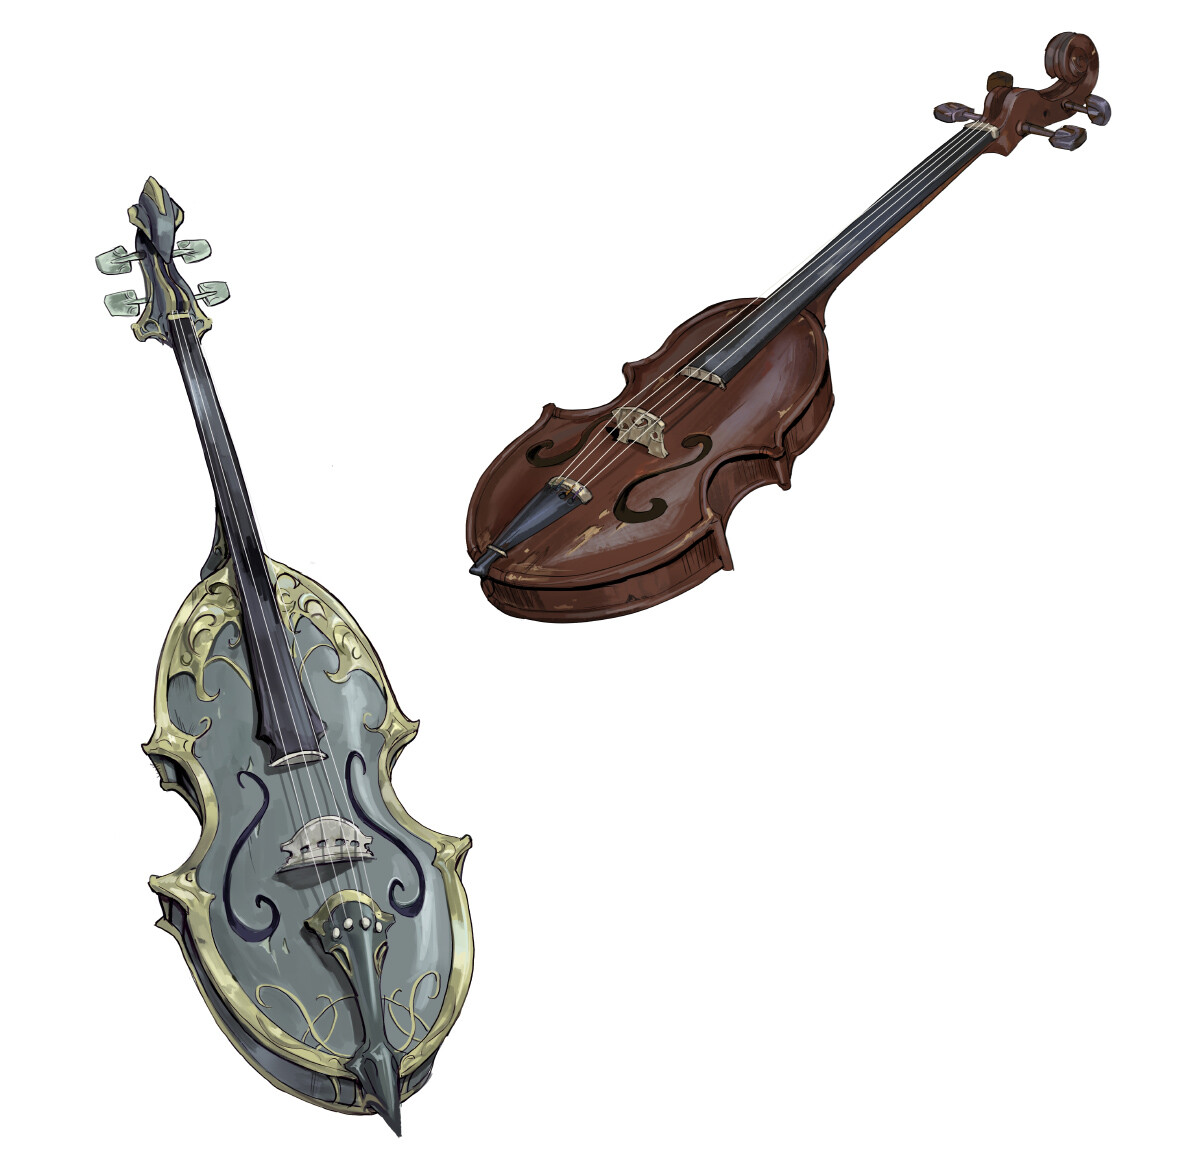 Jordy knoop lovecraft violins